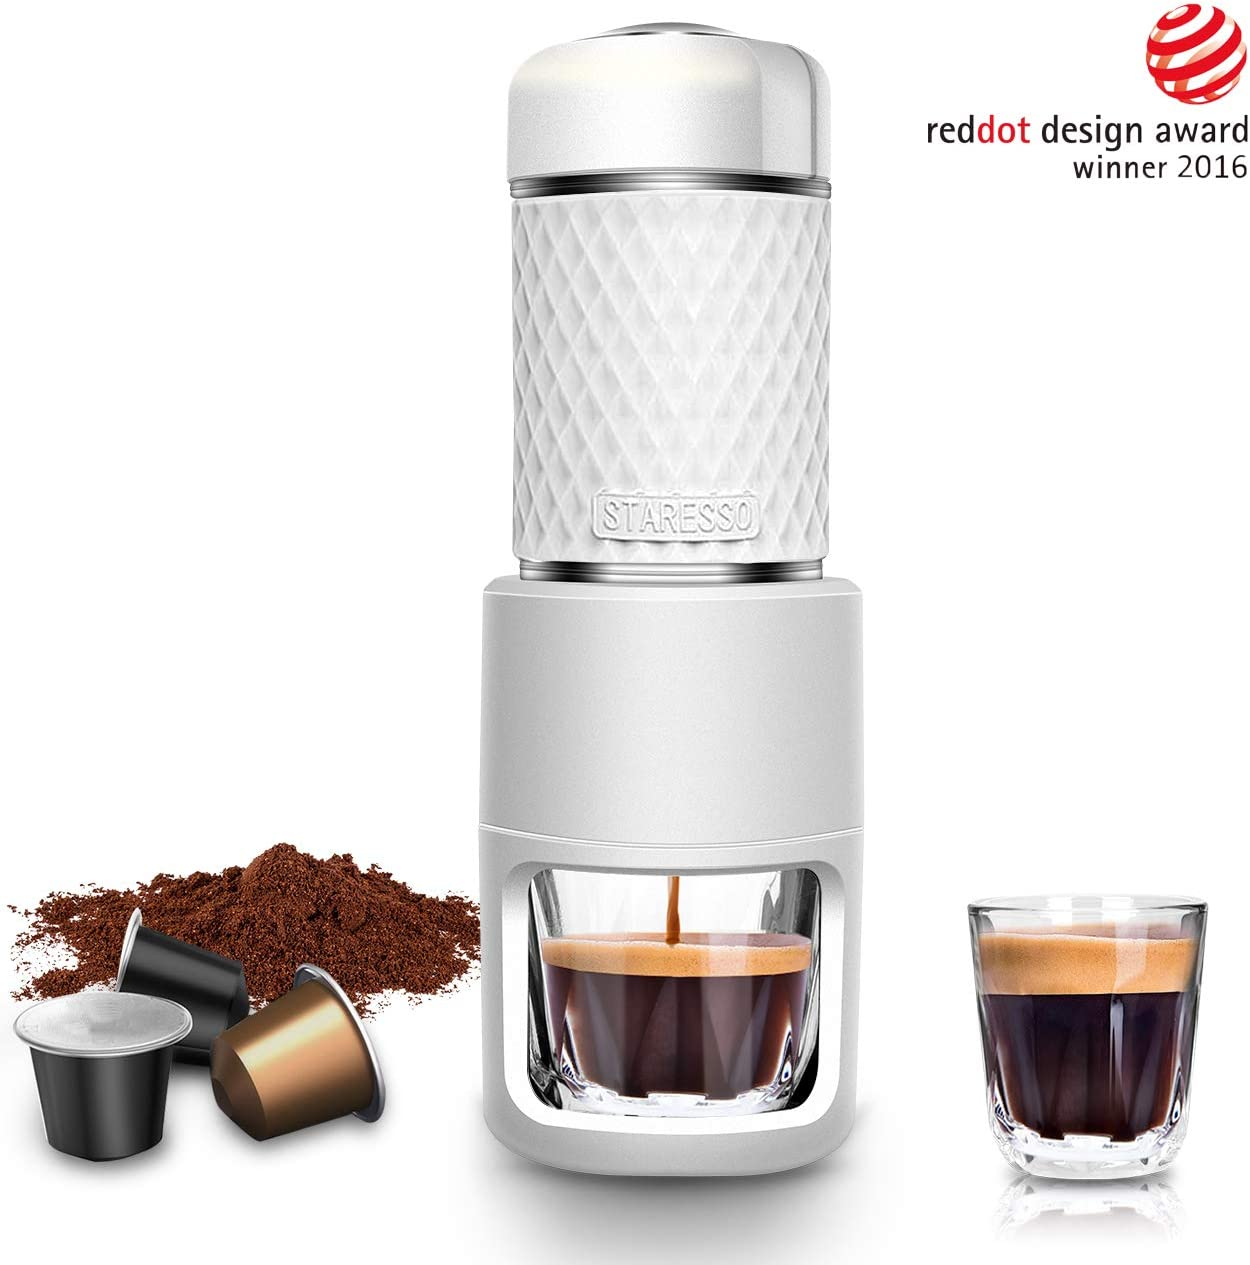 STARESSO Portable Espresso Maker - Mini Espresso Machine with BPA-Free Material for Rich & Thick Crema Manual Espresso Compatible with Nespresso Pods & Ground Coffee Compact Travel Coffee Maker